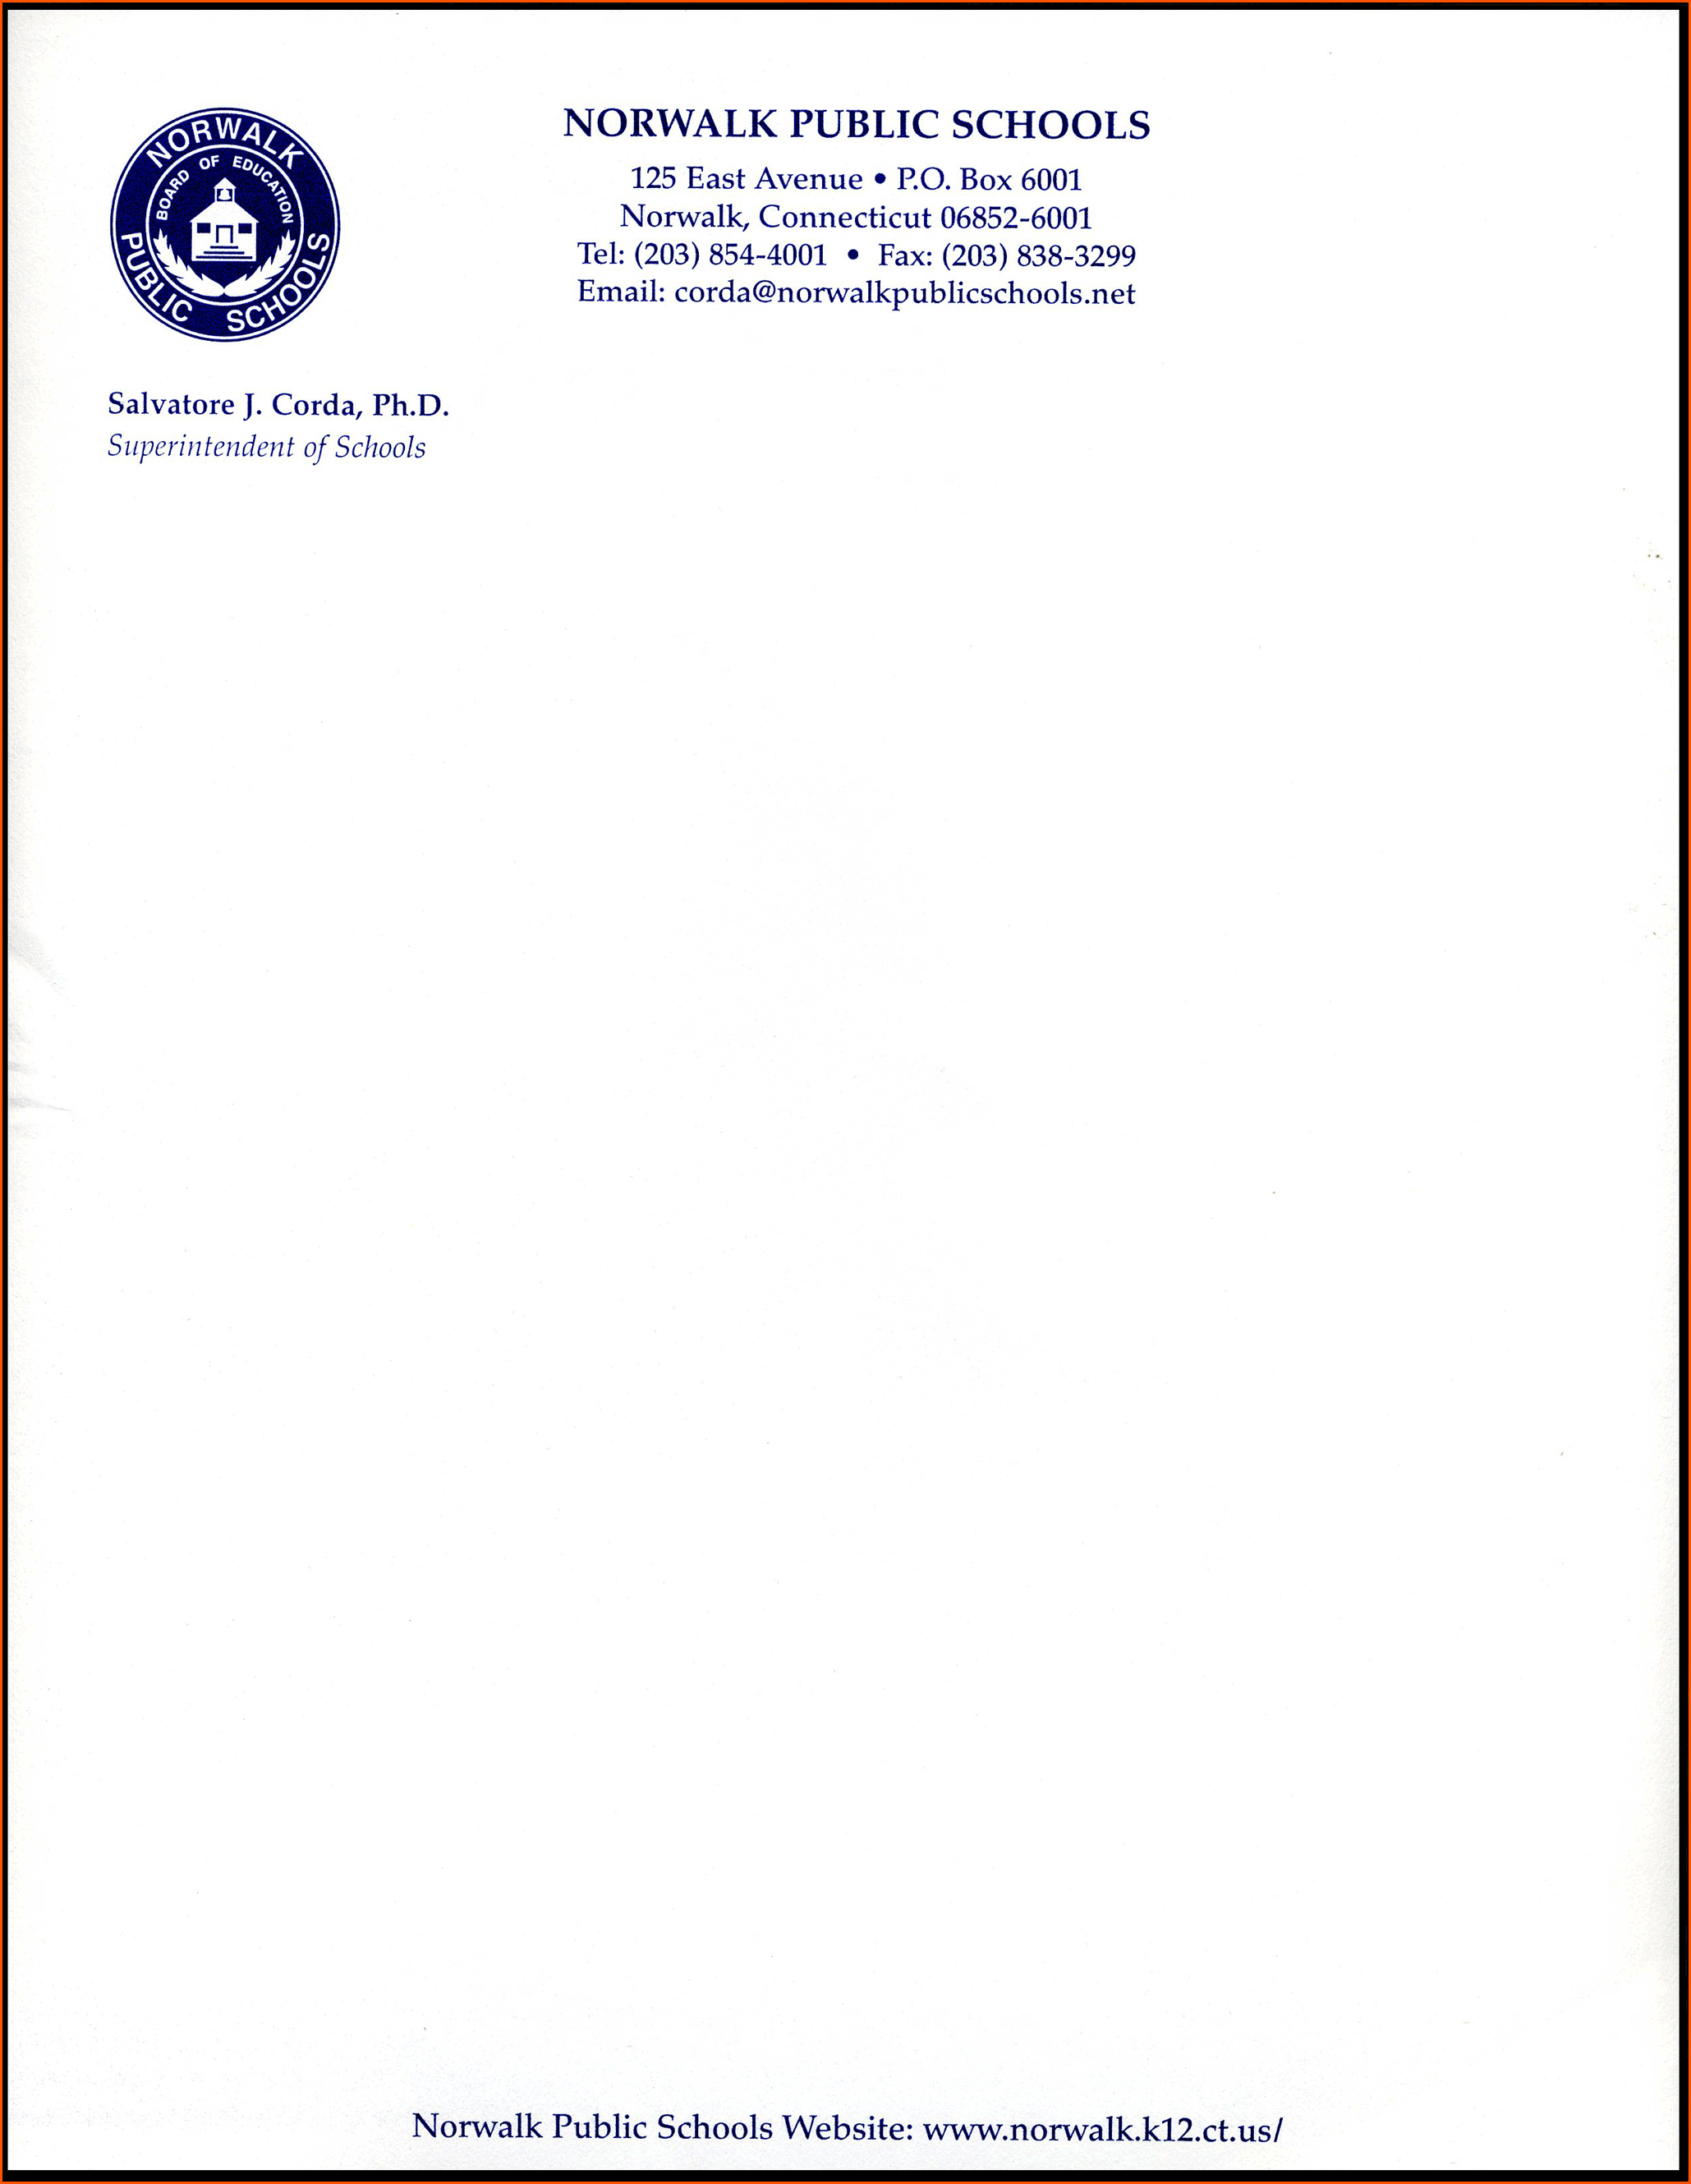 Company Letterhead Samples Denial Letter Sample Can Design Your